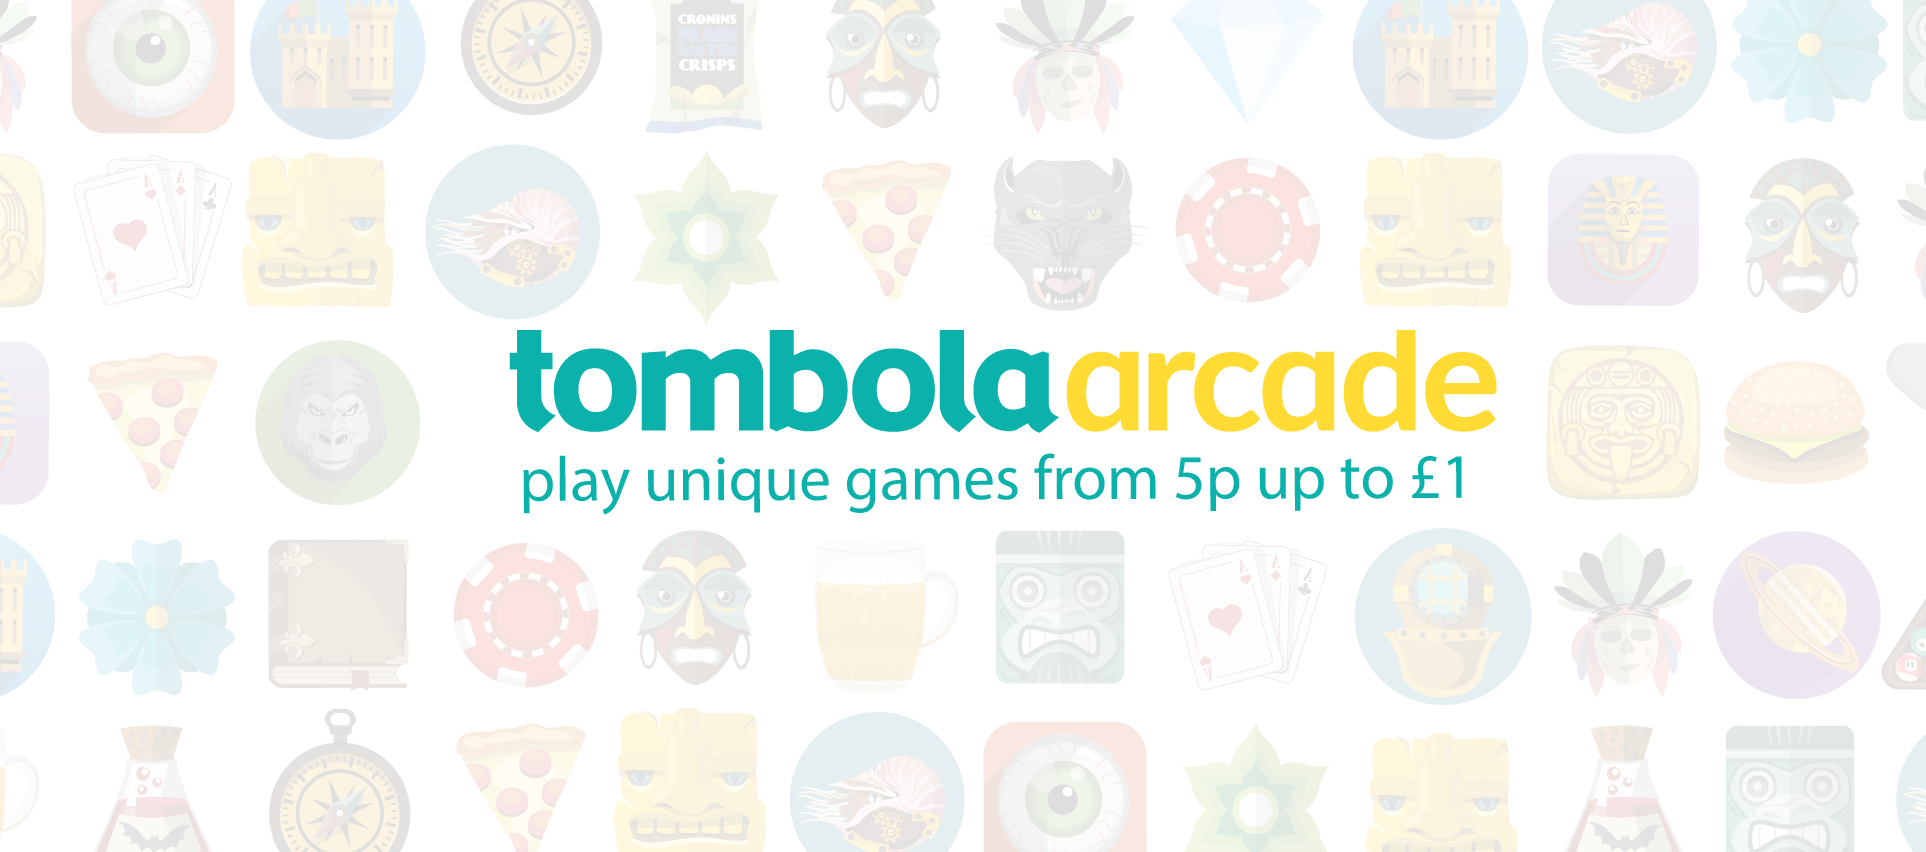 Tombola Arcade Play Unique Instant Win Games From 5p